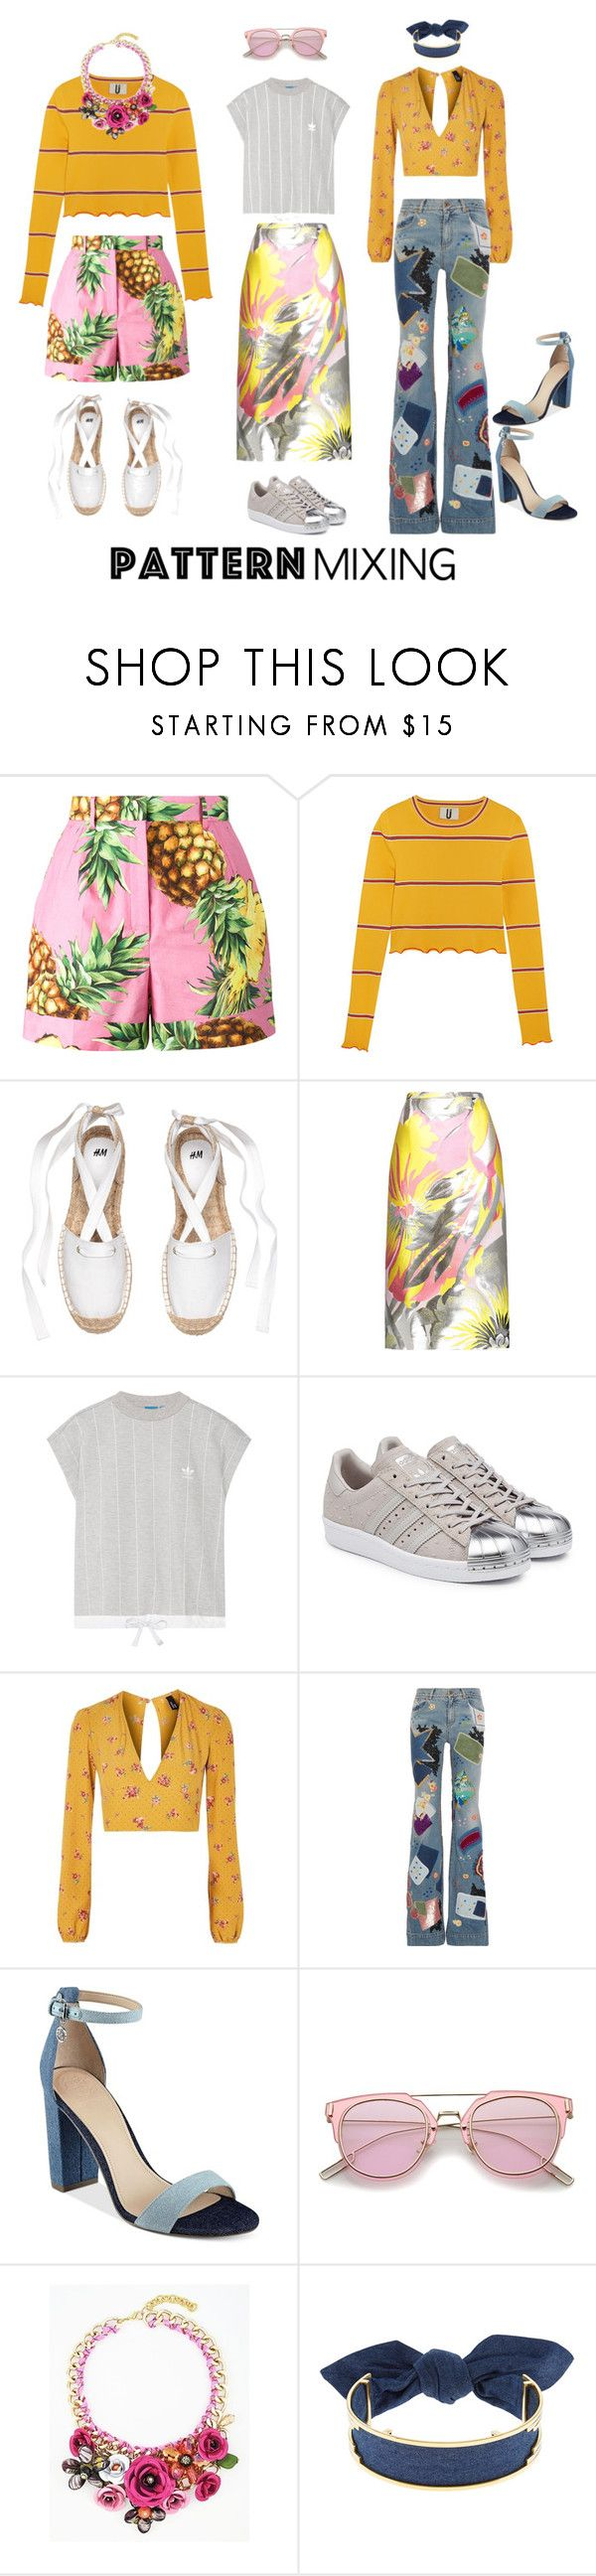 """""""#PatternMixing #MixitUp"""" by thriftytee ❤ liked on Polyvore featuring Dolce&Gabbana, Topshop Unique, Rochas, adidas Originals, Nobody's Child, Roberto Cavalli, GUESS and Monica Sordo"""